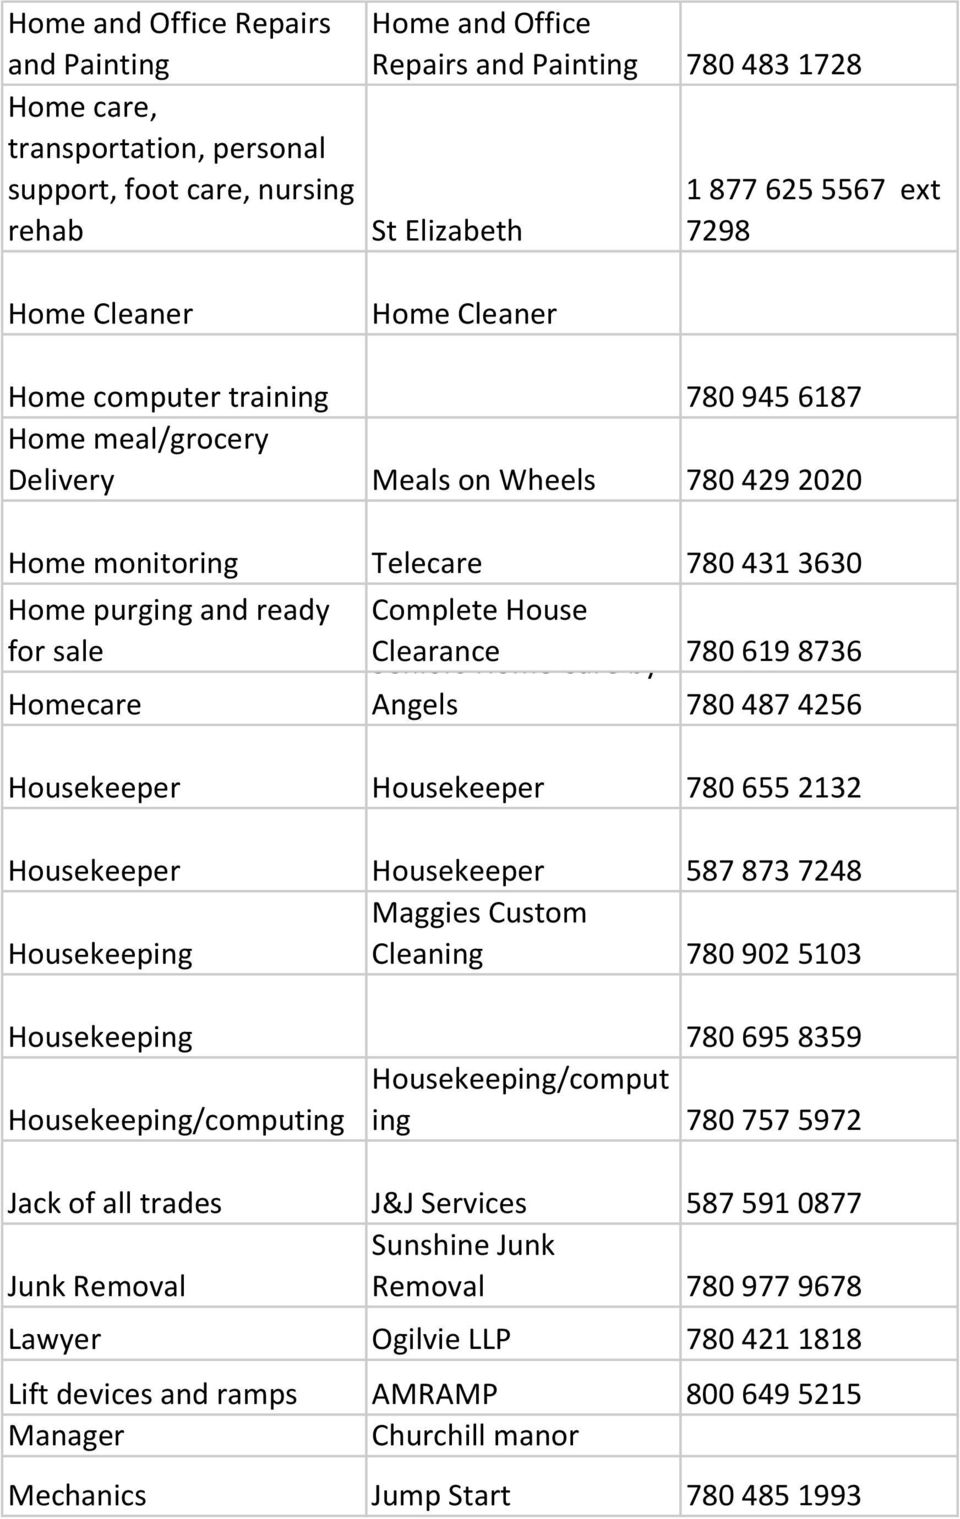 Complete House Clearance Seniors Home Care by 780 619 8736 Angels 780 487 4256 Housekeeper Housekeeper 780 655 2132 Housekeeper Housekeeper 587 873 7248 Maggies Custom Housekeeping Cleaning 780 902